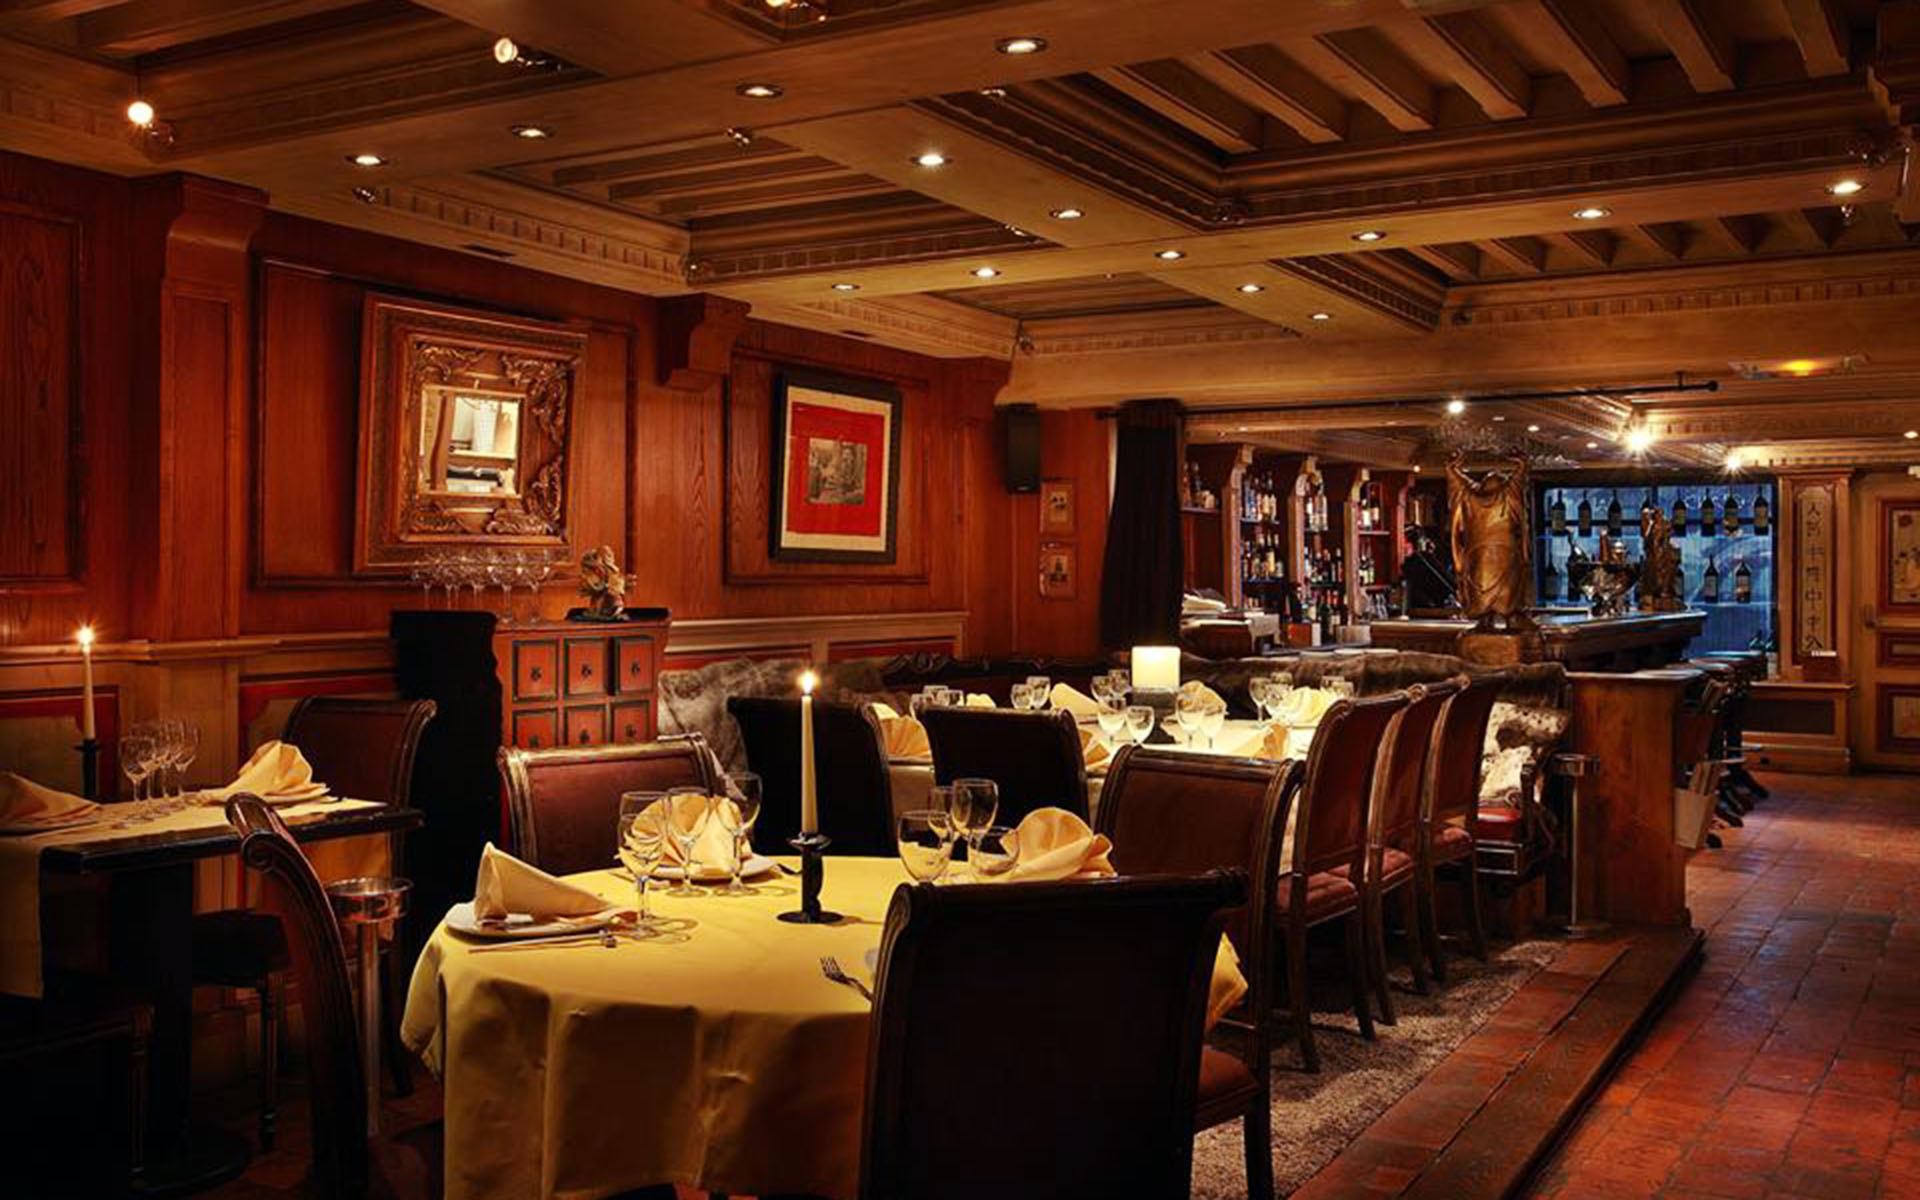 302/Site Maison Tournier/Restaurant/Grand Café Courchevel/grand_cafe_courchevel_restaurant_1.jpg